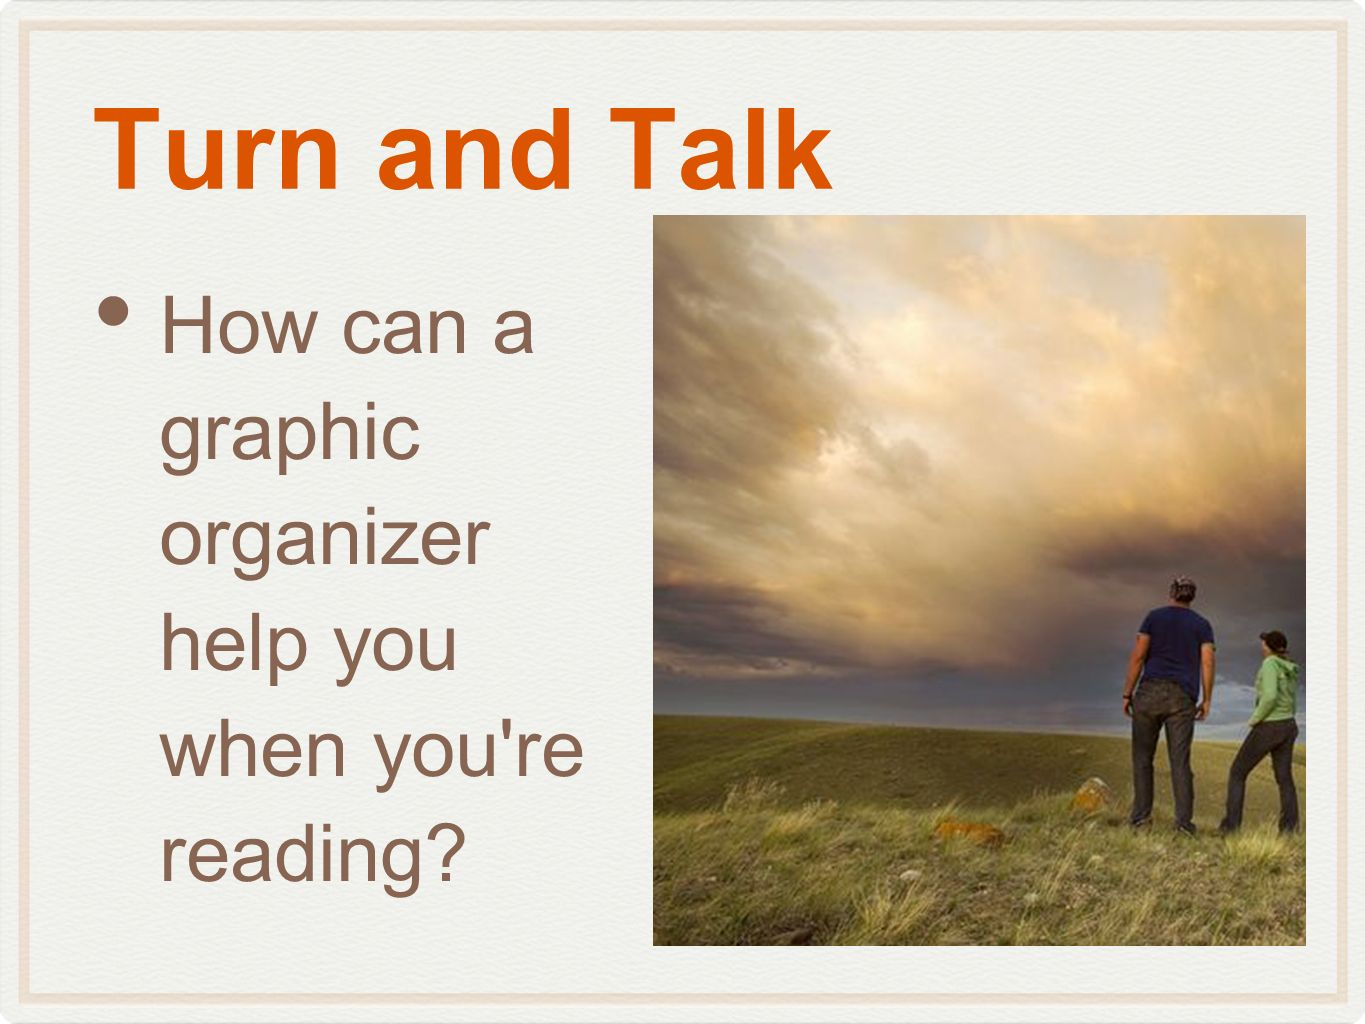 Turn and Talk How can a graphic organizer help you when you're reading?